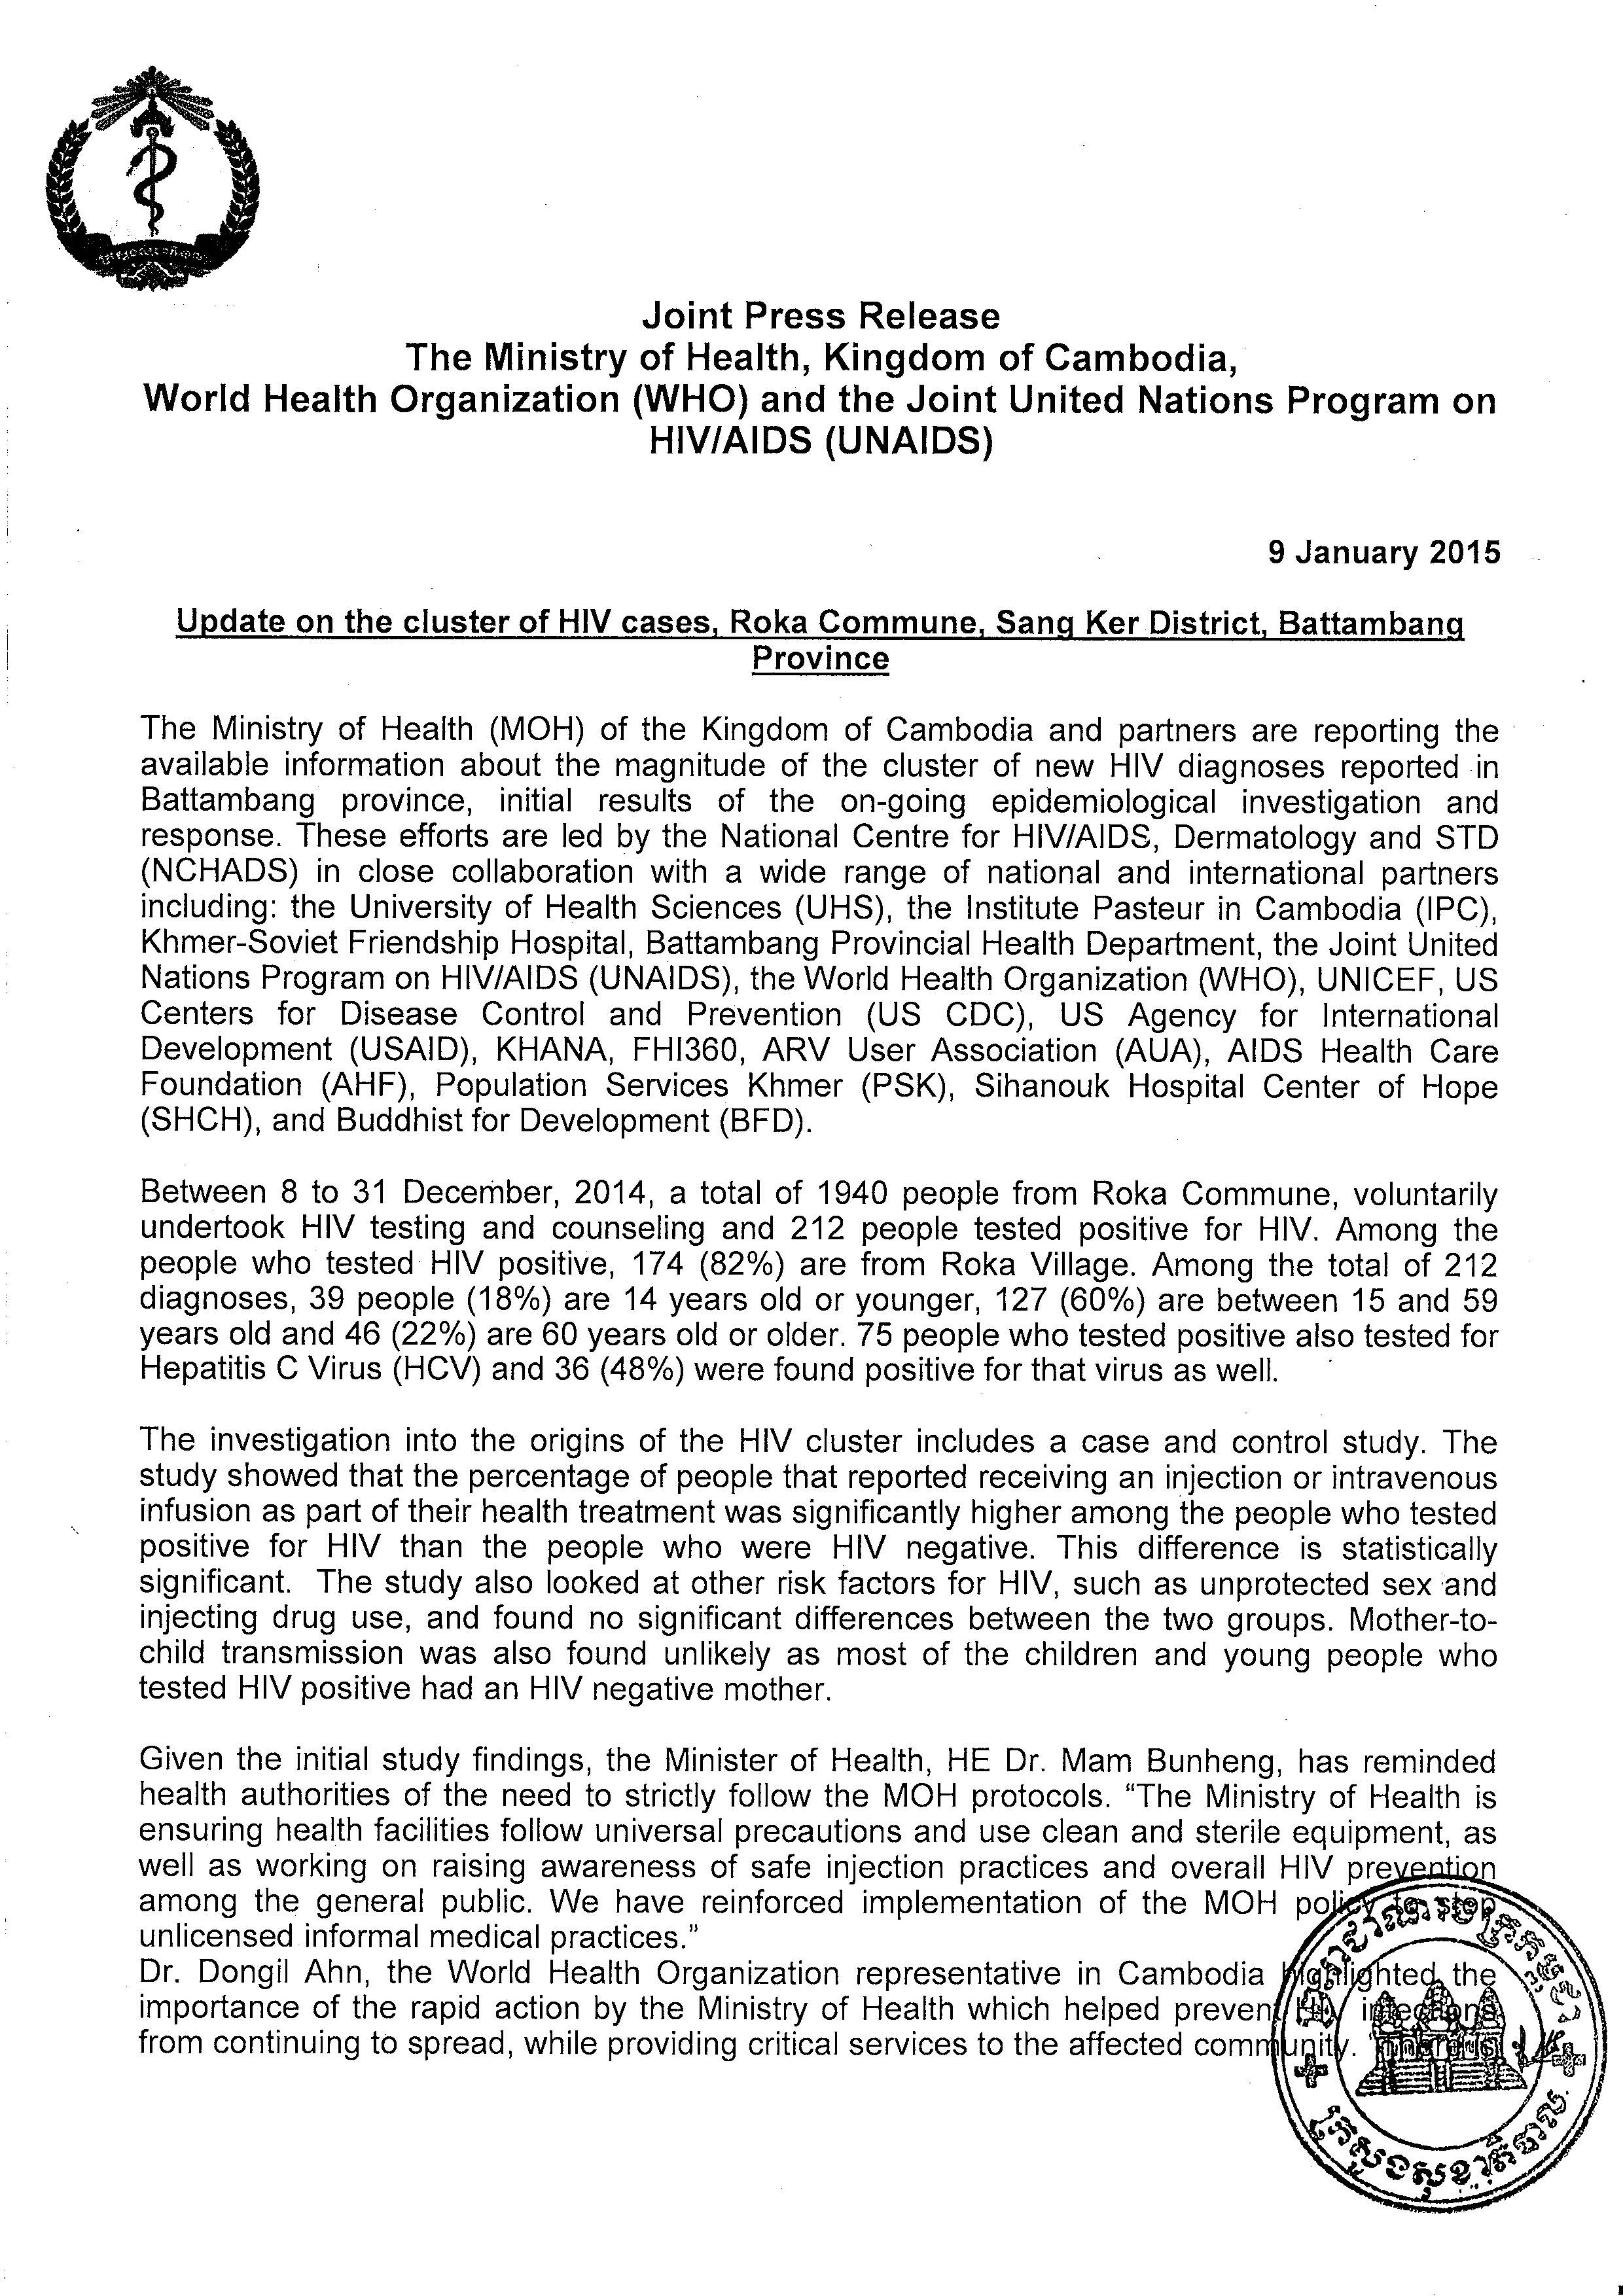 Joint Press Release The Ministry of Health, Kingdom of Cambodia, World Health Organization (WHO) and Joint United Nationals Program on HIV/AIDS (UNAIDS)